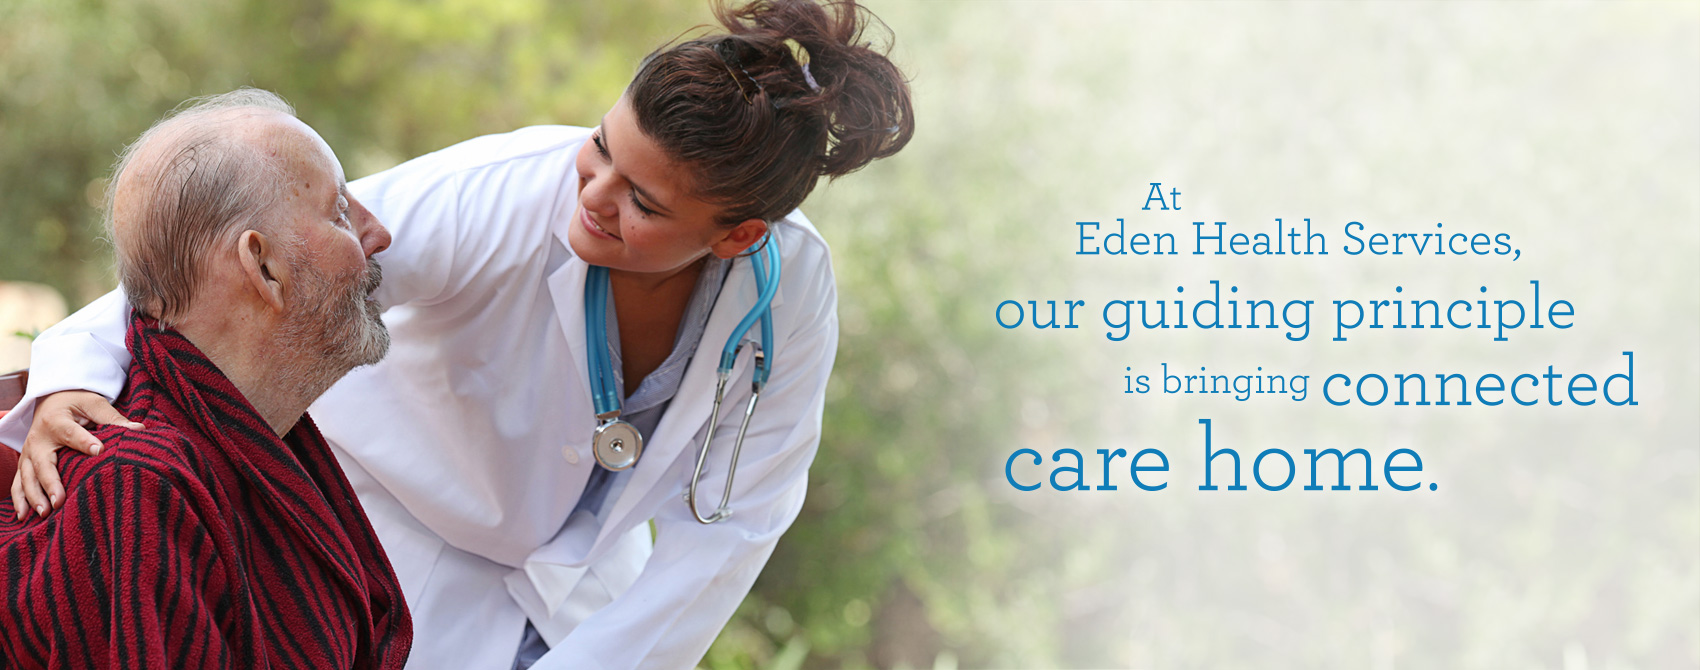 At Eden Health Services our guiding principal is bringing connected care home.